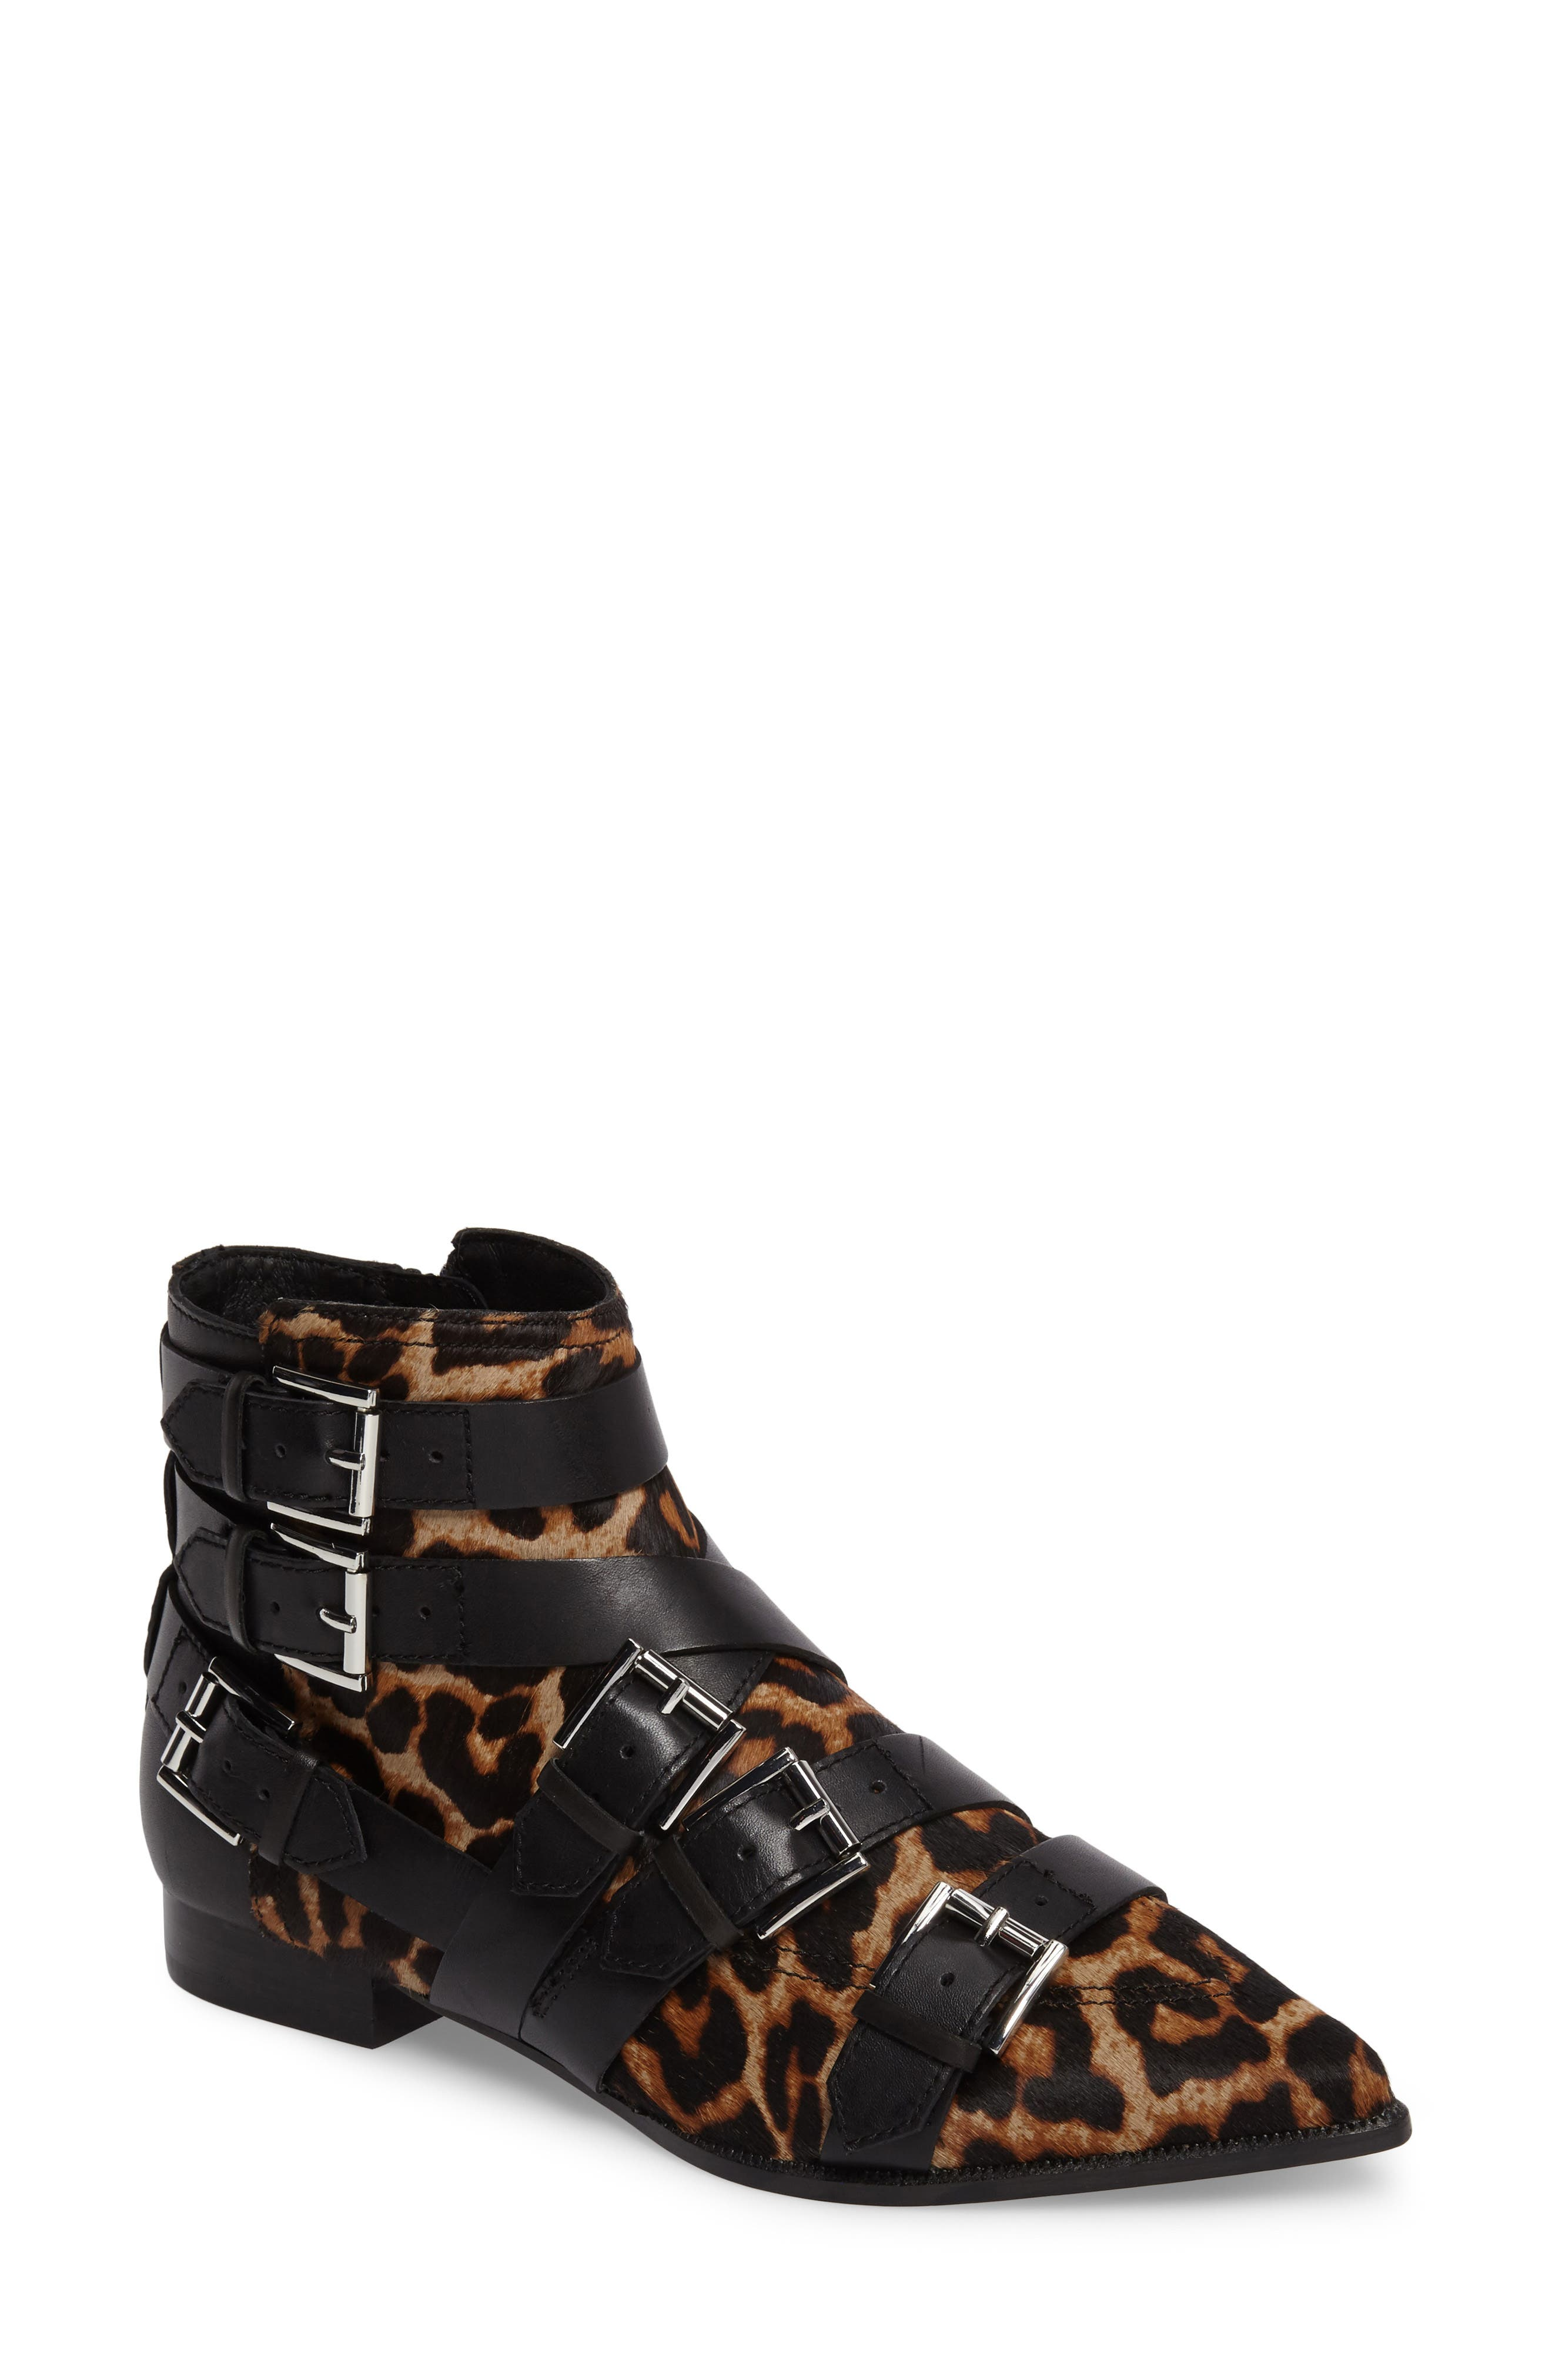 Ash Blast Genuine Calf Hair Buckle Strap Bootie (Women)